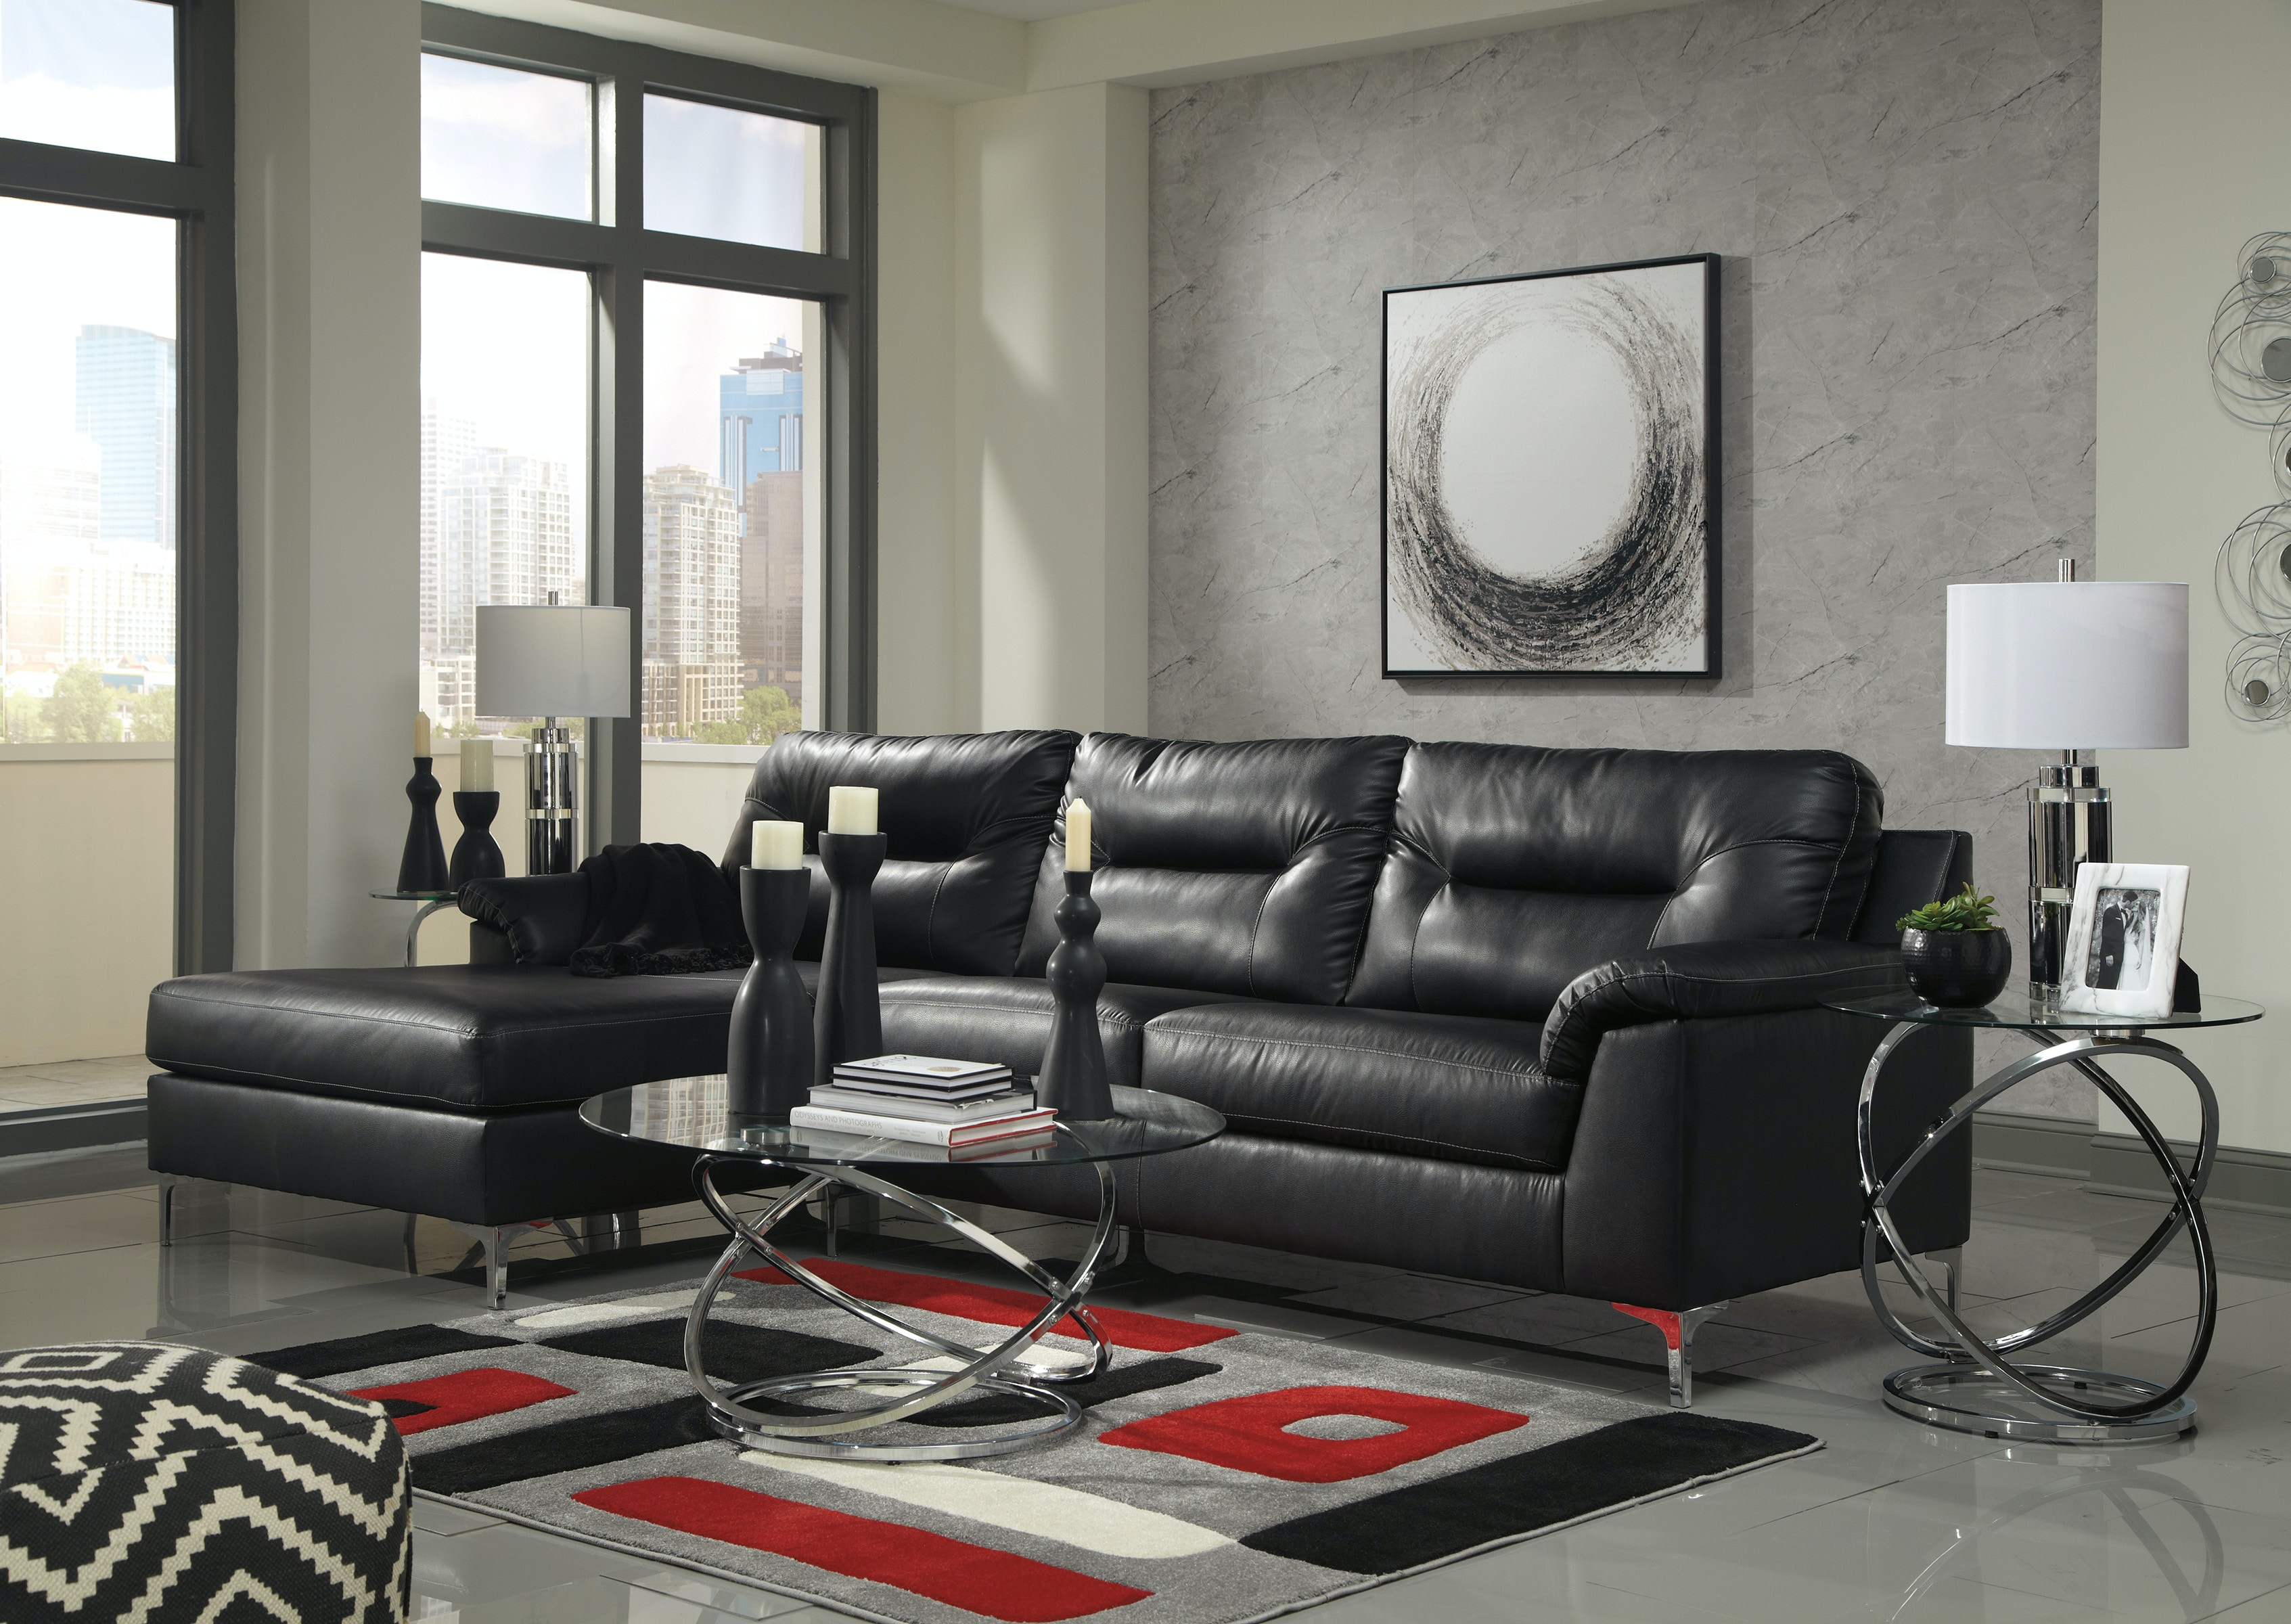 living room package tiles floor 5pc tensus black signature design by ashley 39604 16 67